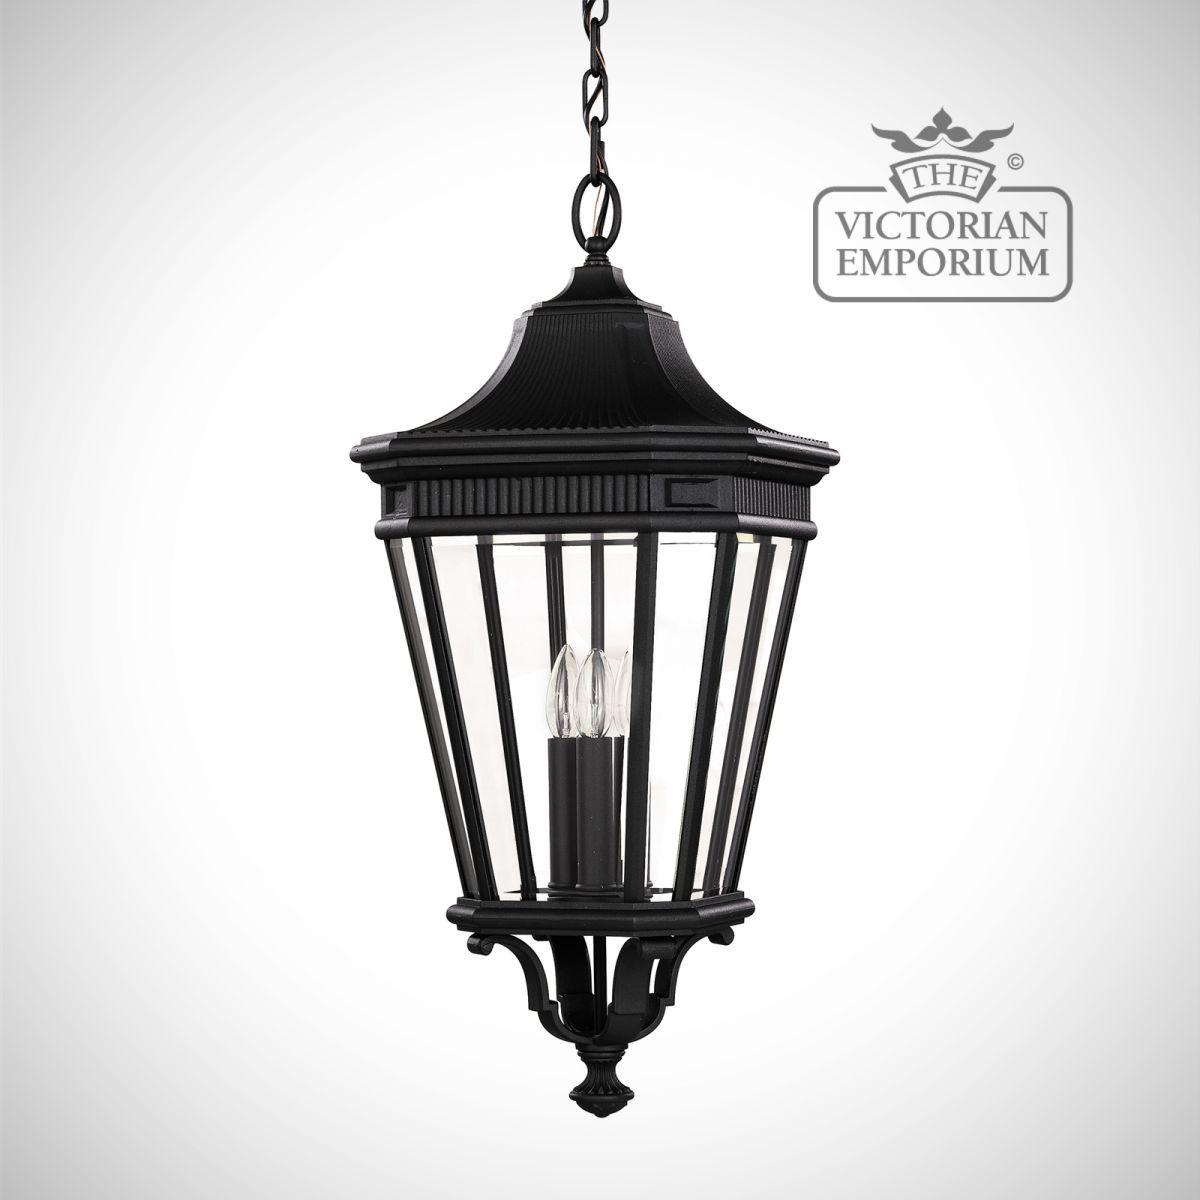 Buy cotswold large chain lantern in black exterior ceiling lights buy cotswold large chain lantern in black exterior ceiling lights this large chain aloadofball Image collections